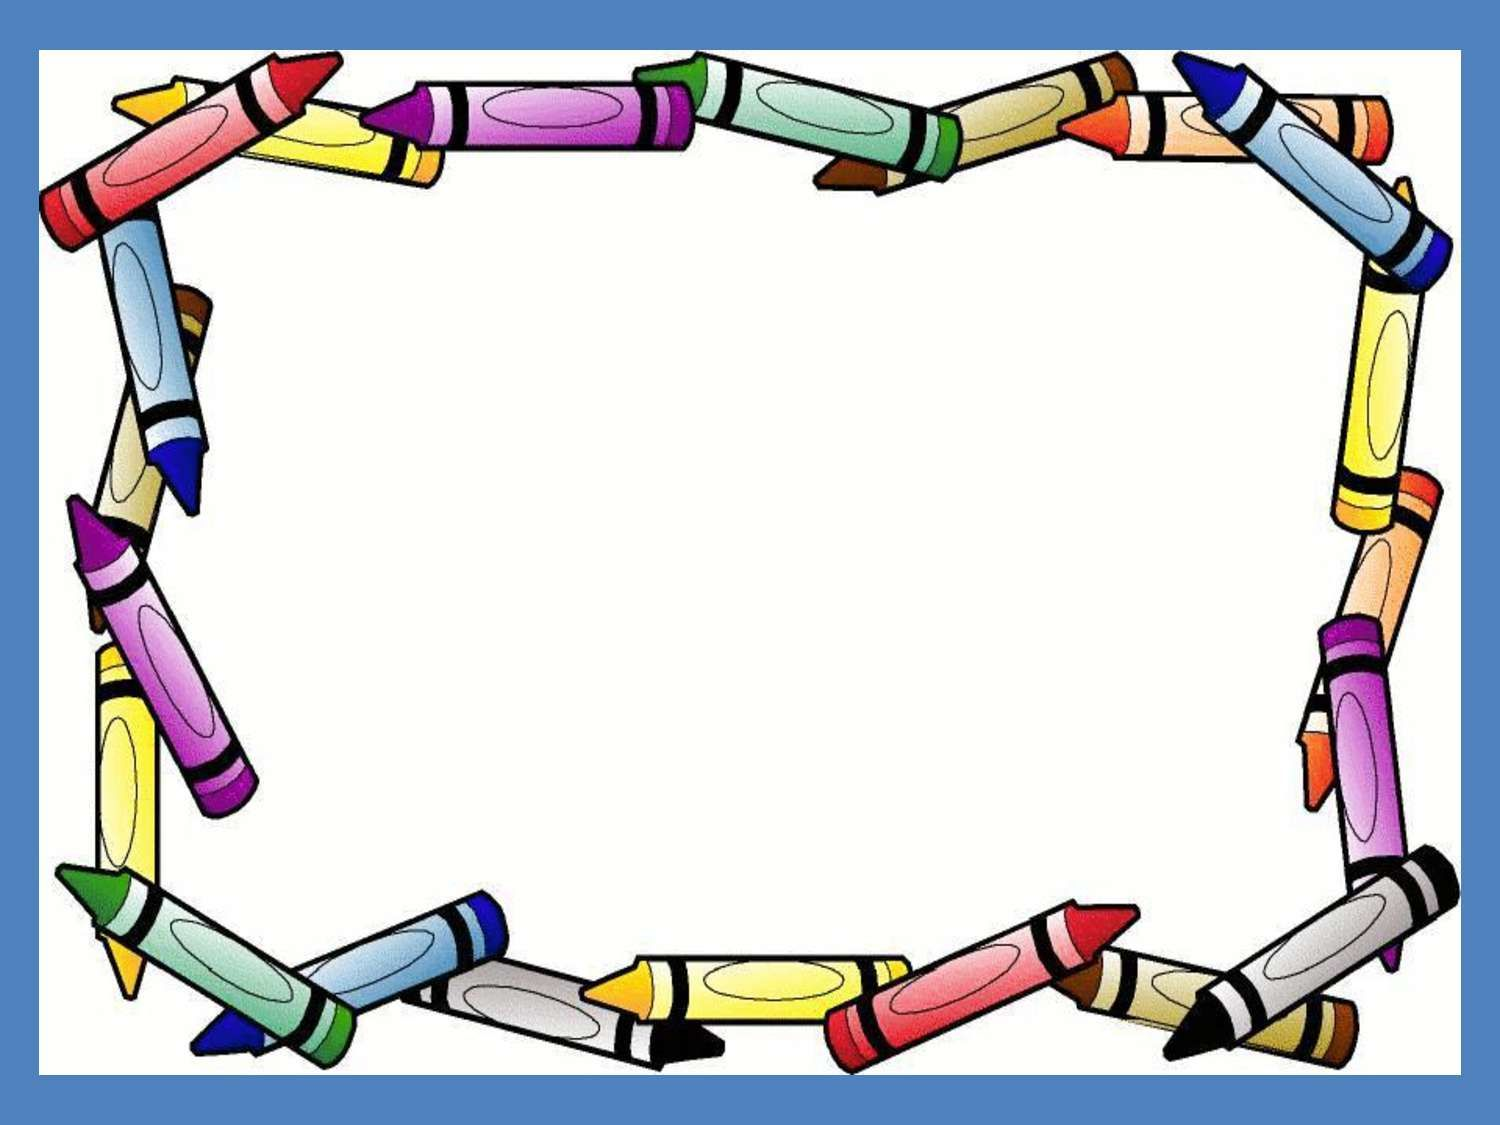 School supplies borders and frames clipart panda free clipart school supplies borders and frames clipart panda free clipart toneelgroepblik Images